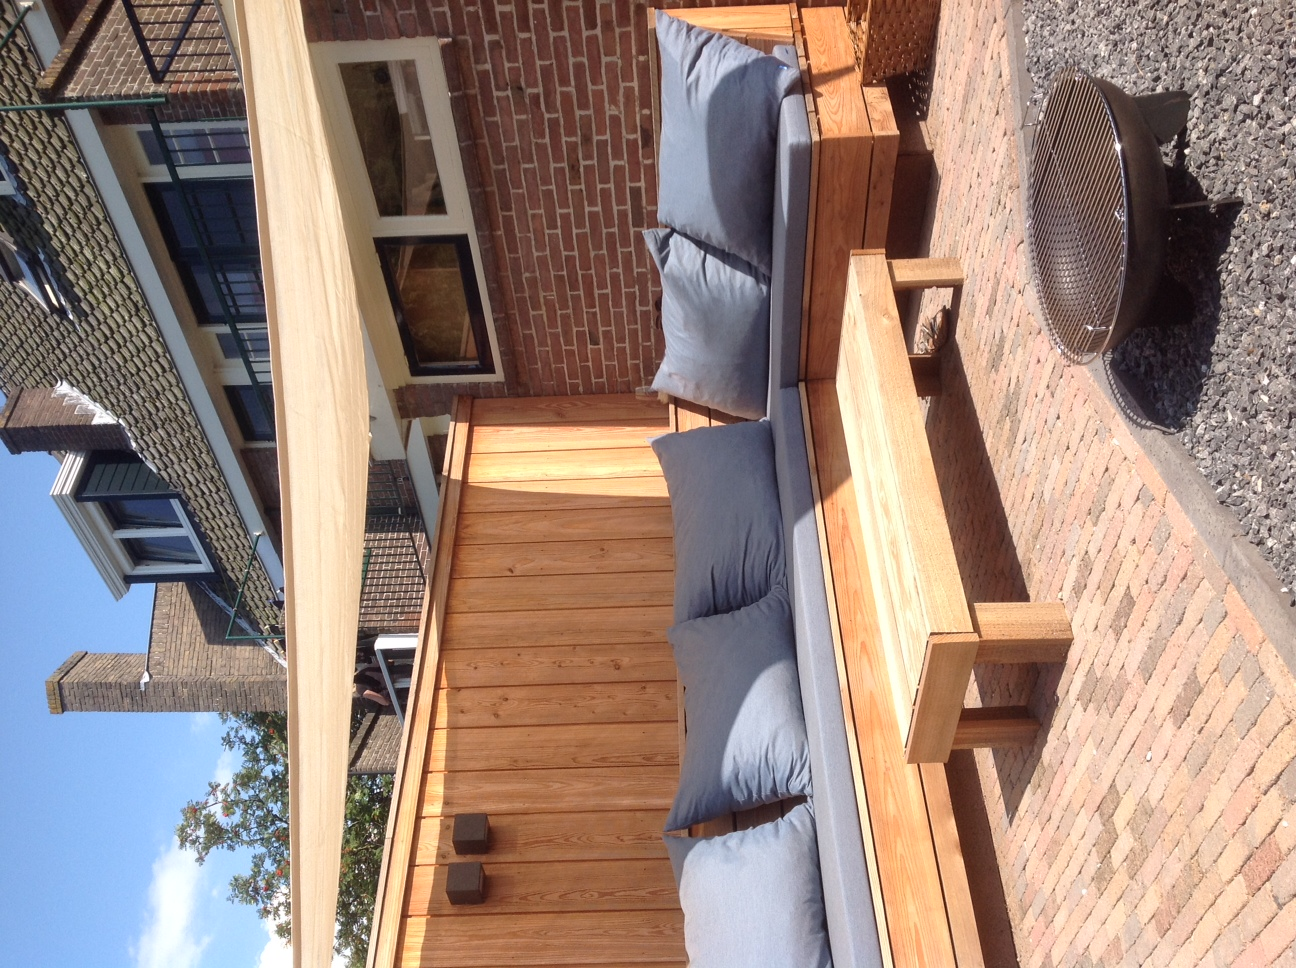 houten loungebank in stadstuin